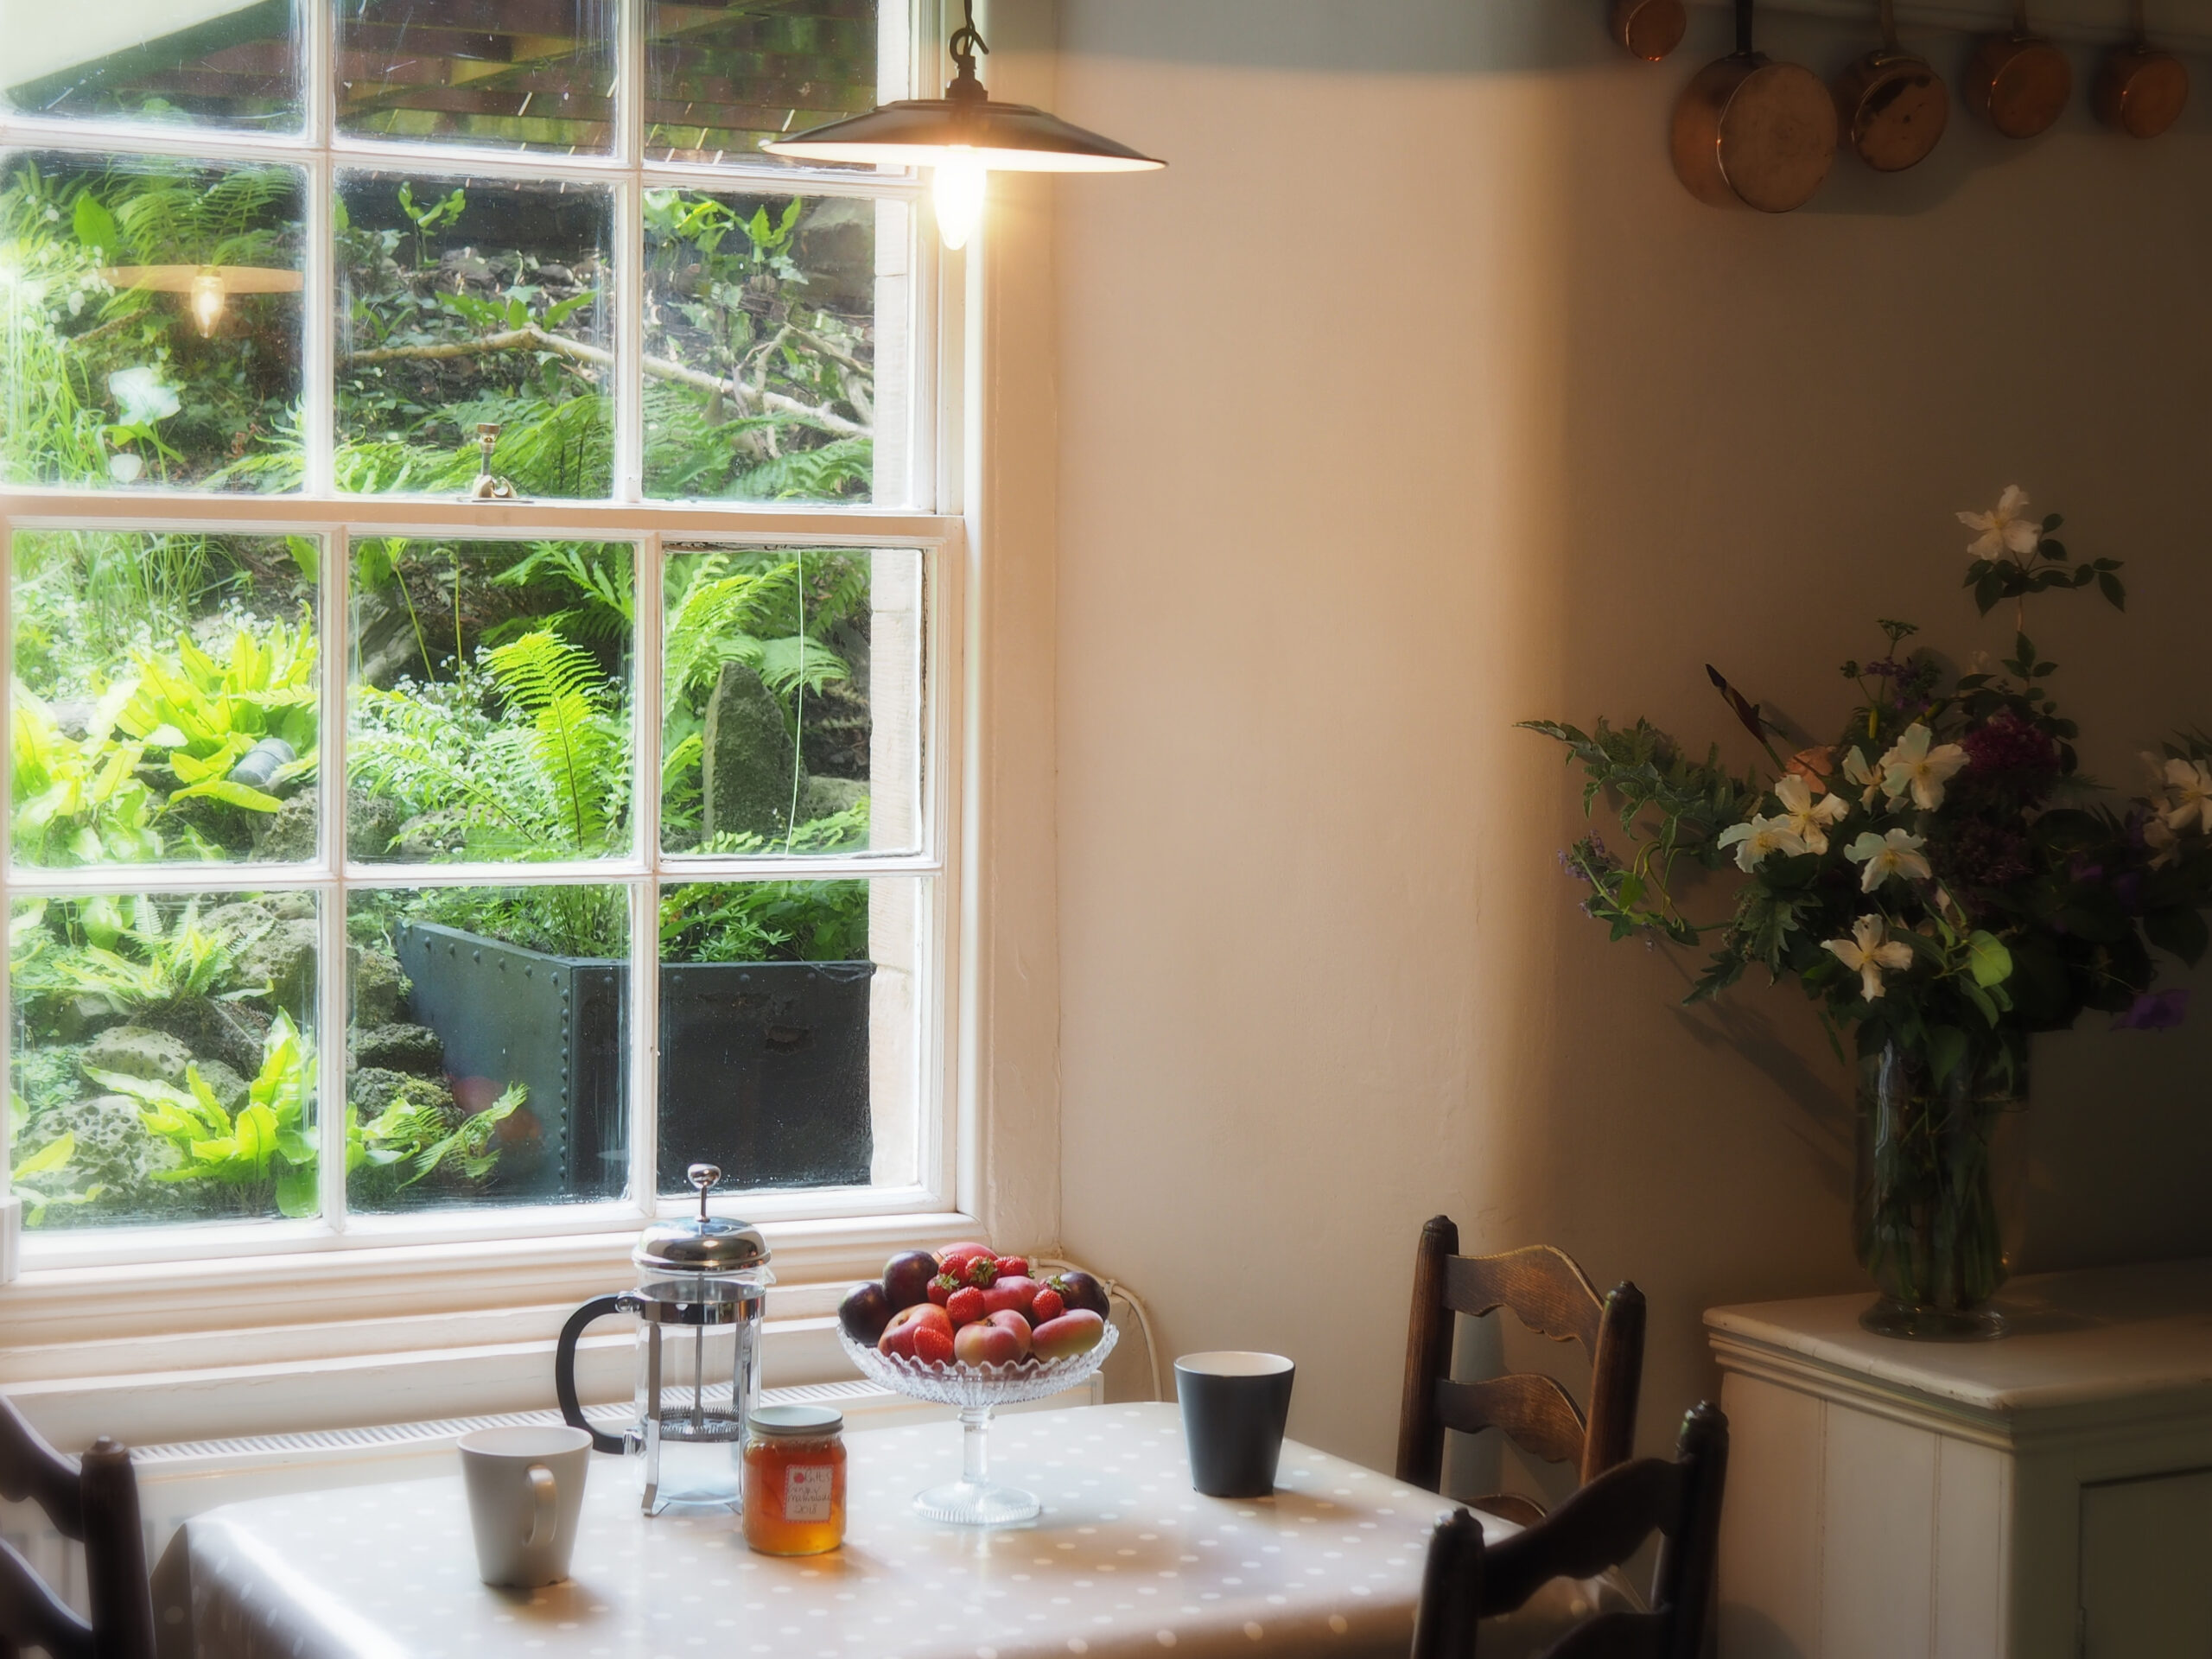 The-fern-garden-outlook-from-the-kitchenette